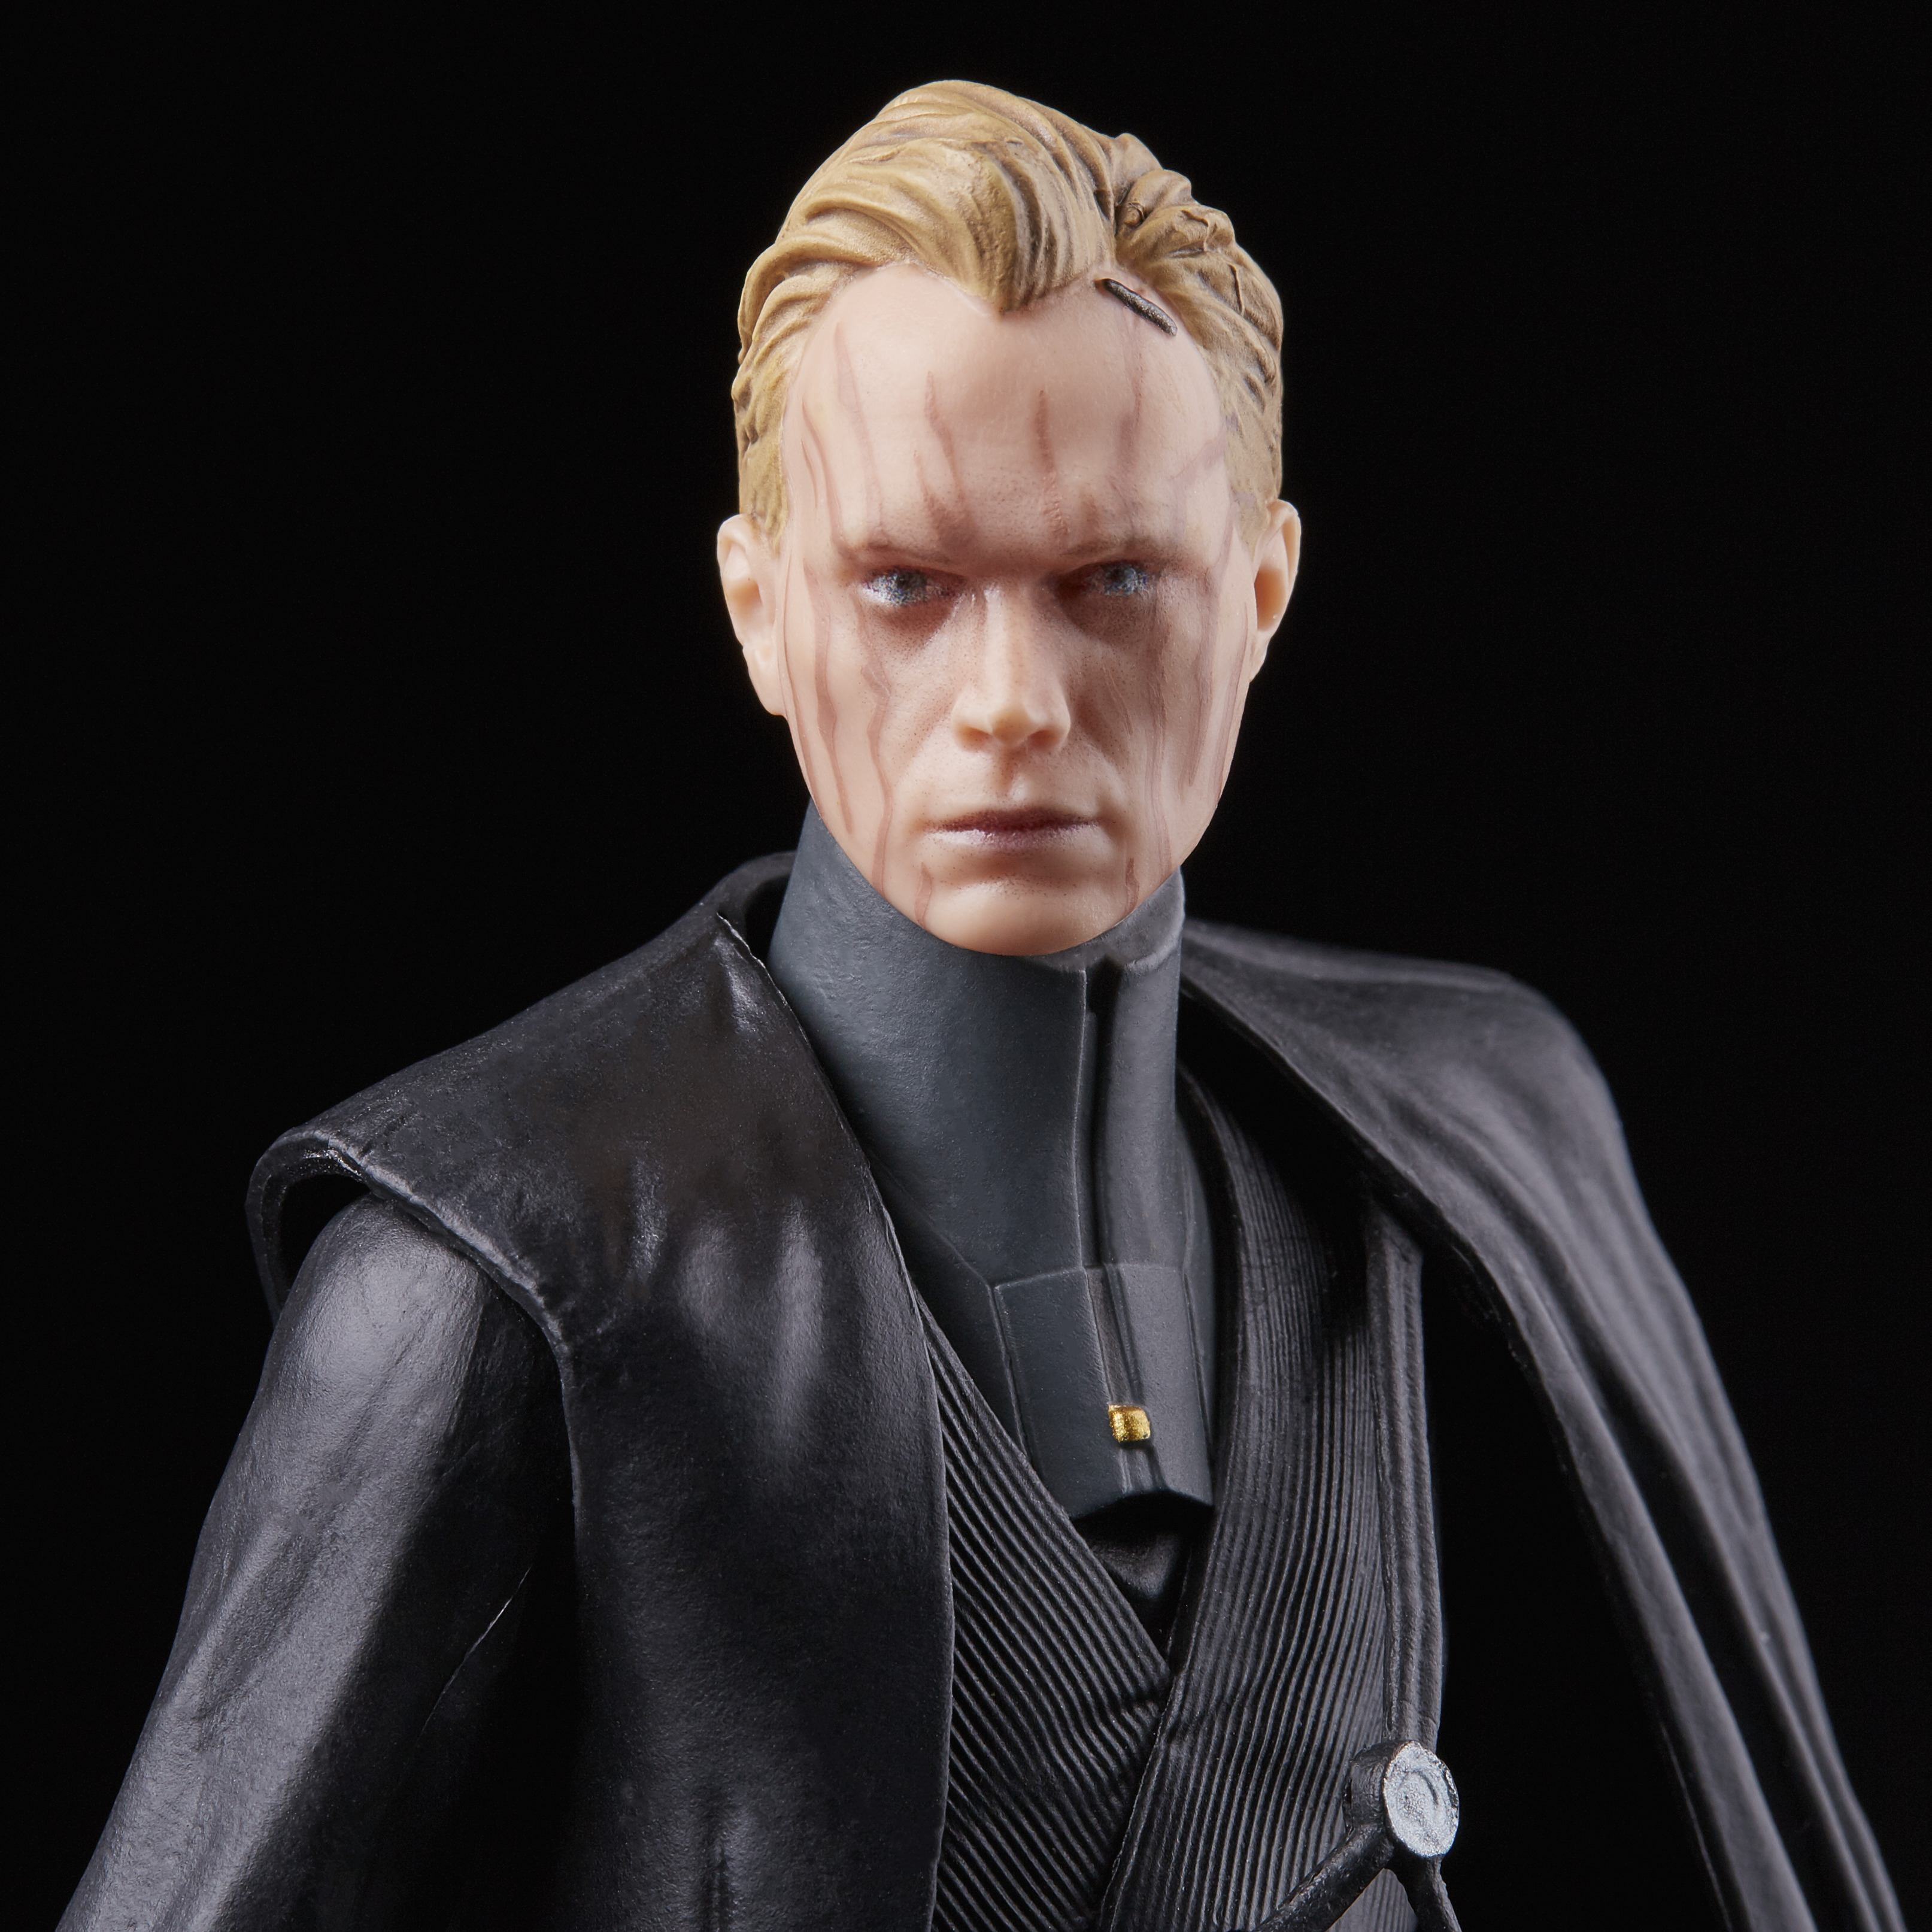 Star Wars The Black Series Dryden Vos 15cm E4070 5010993568031